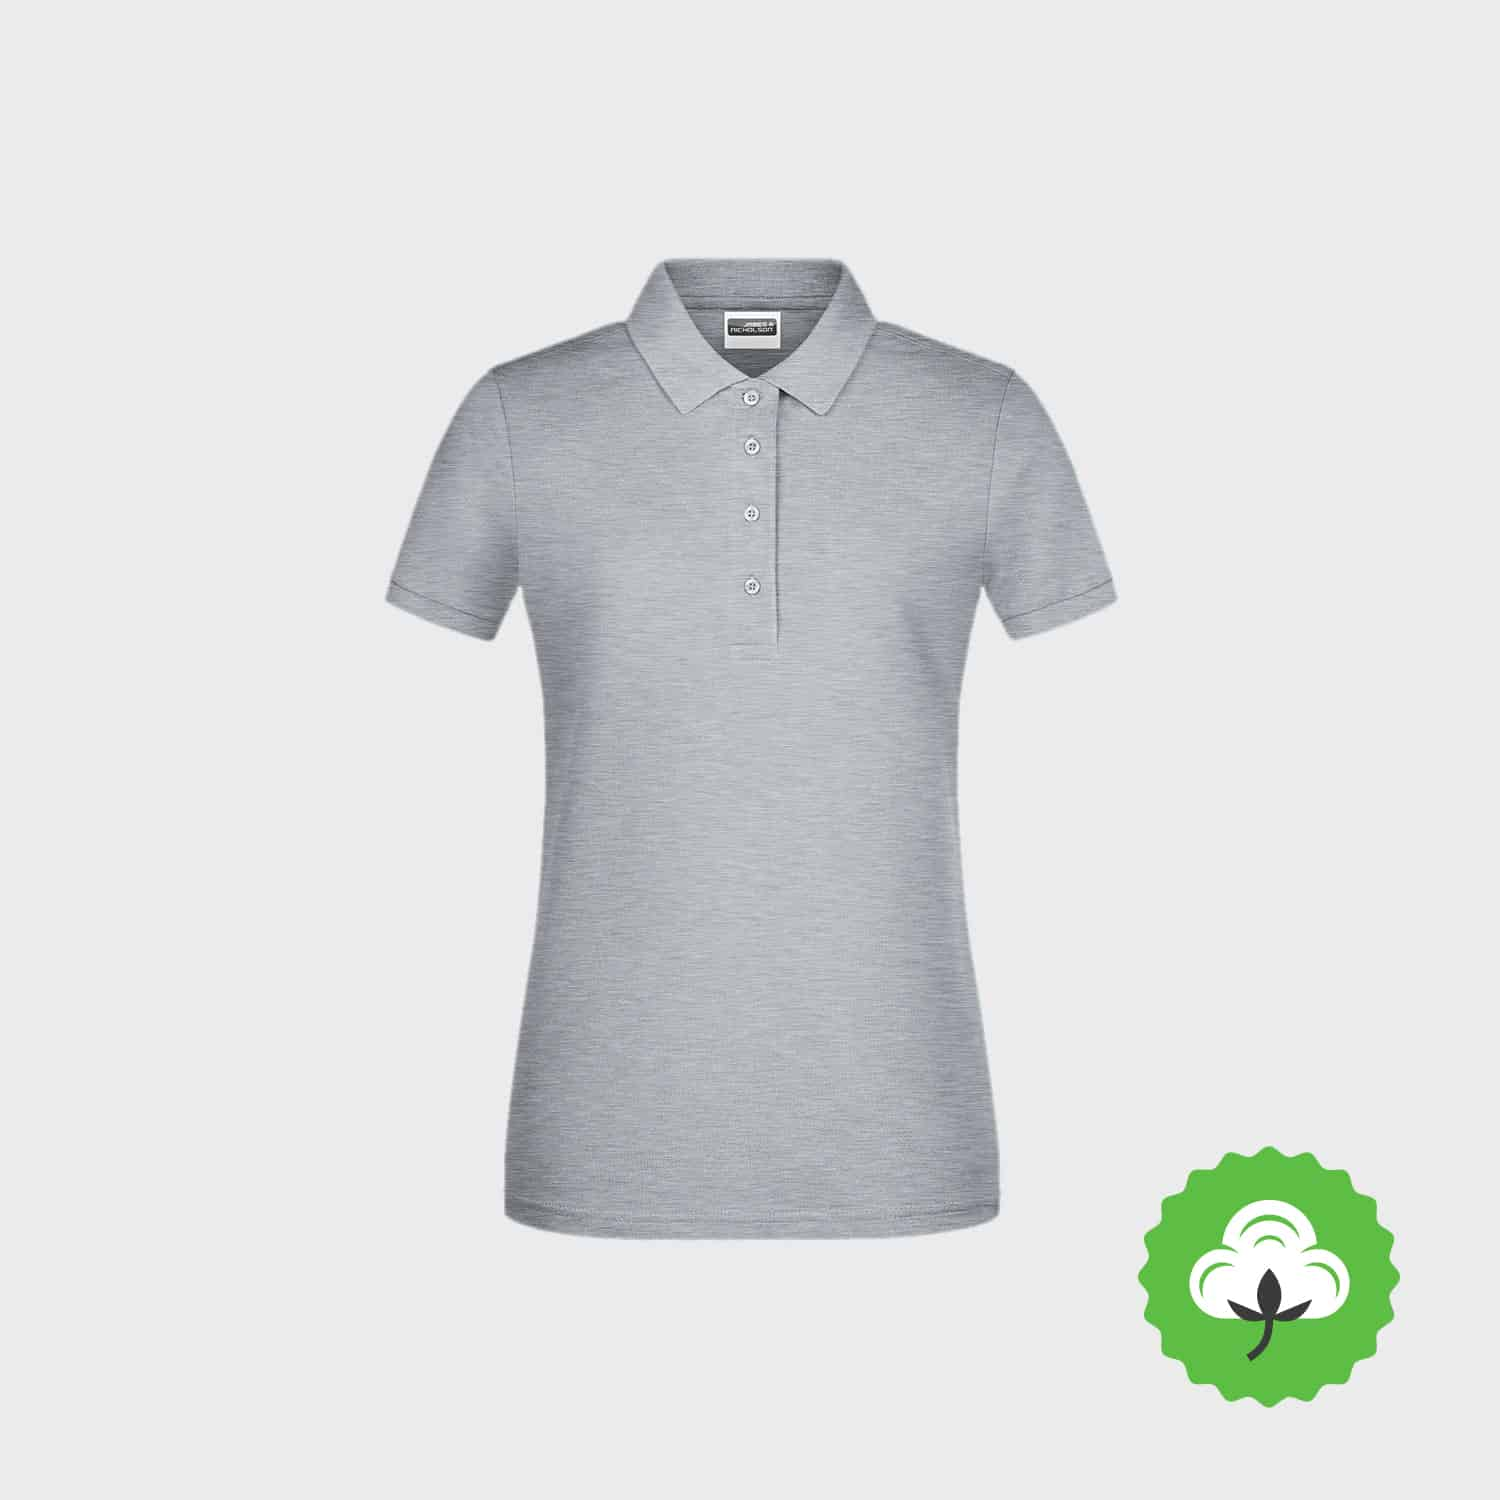 Bio-Polo-Shirt-besticken-bedrucken StickManufaktur